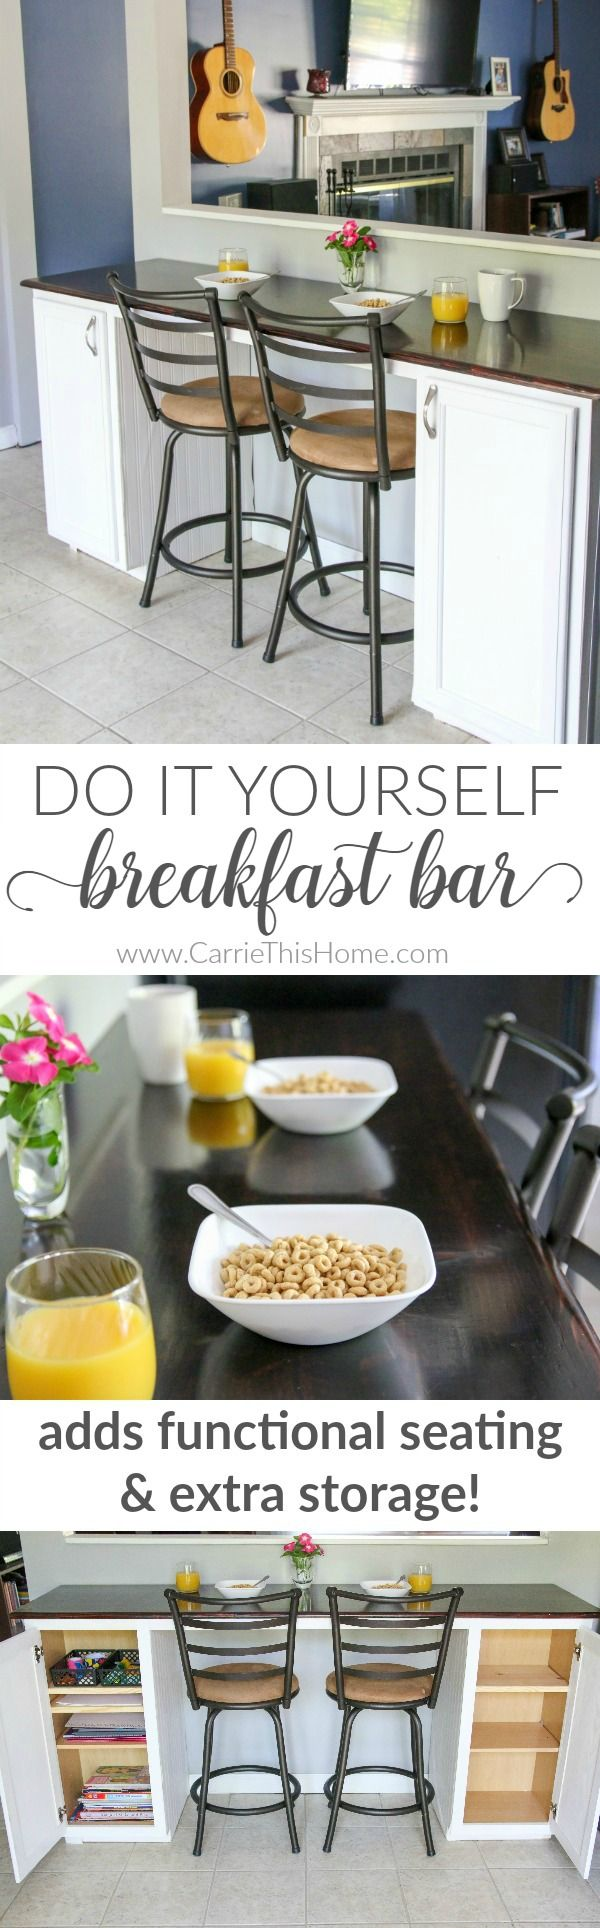 Pin by marilyn cruz on kitchens pinterest breakfast bars pin by marilyn cruz on kitchens pinterest breakfast bars kitchen bar counter and bar counter solutioingenieria Images